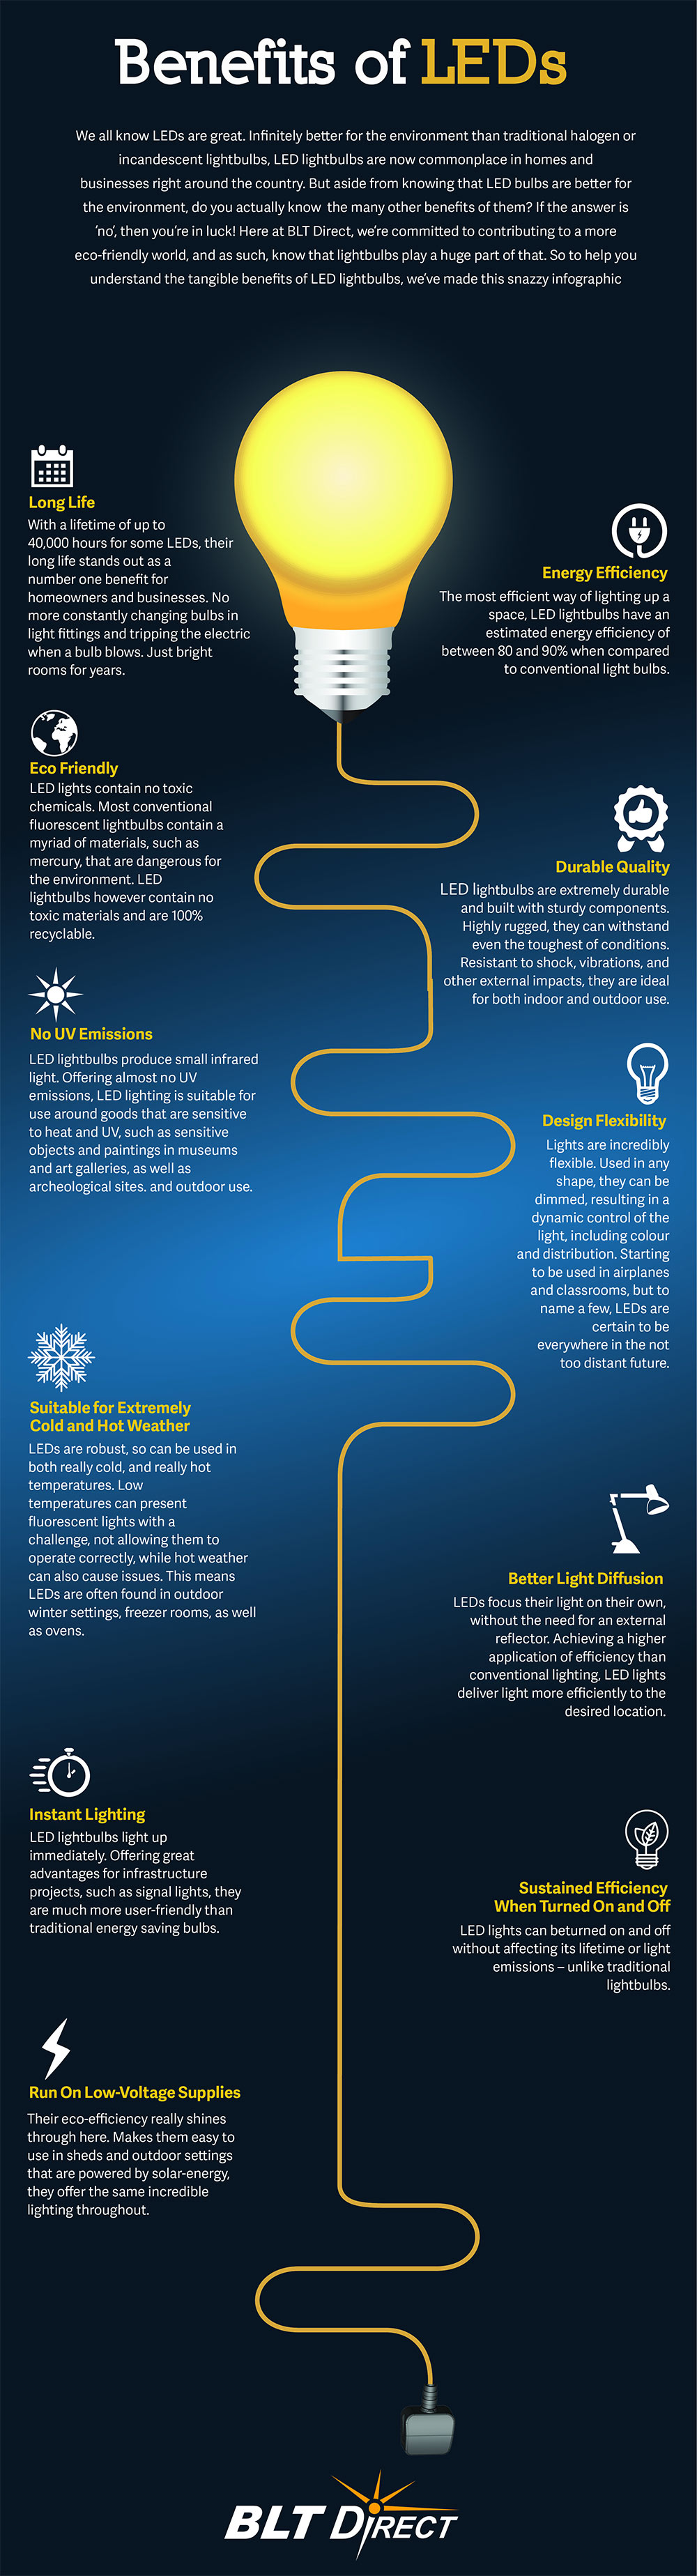 Benefits-of-LEDs-Infographic-Small.jpg